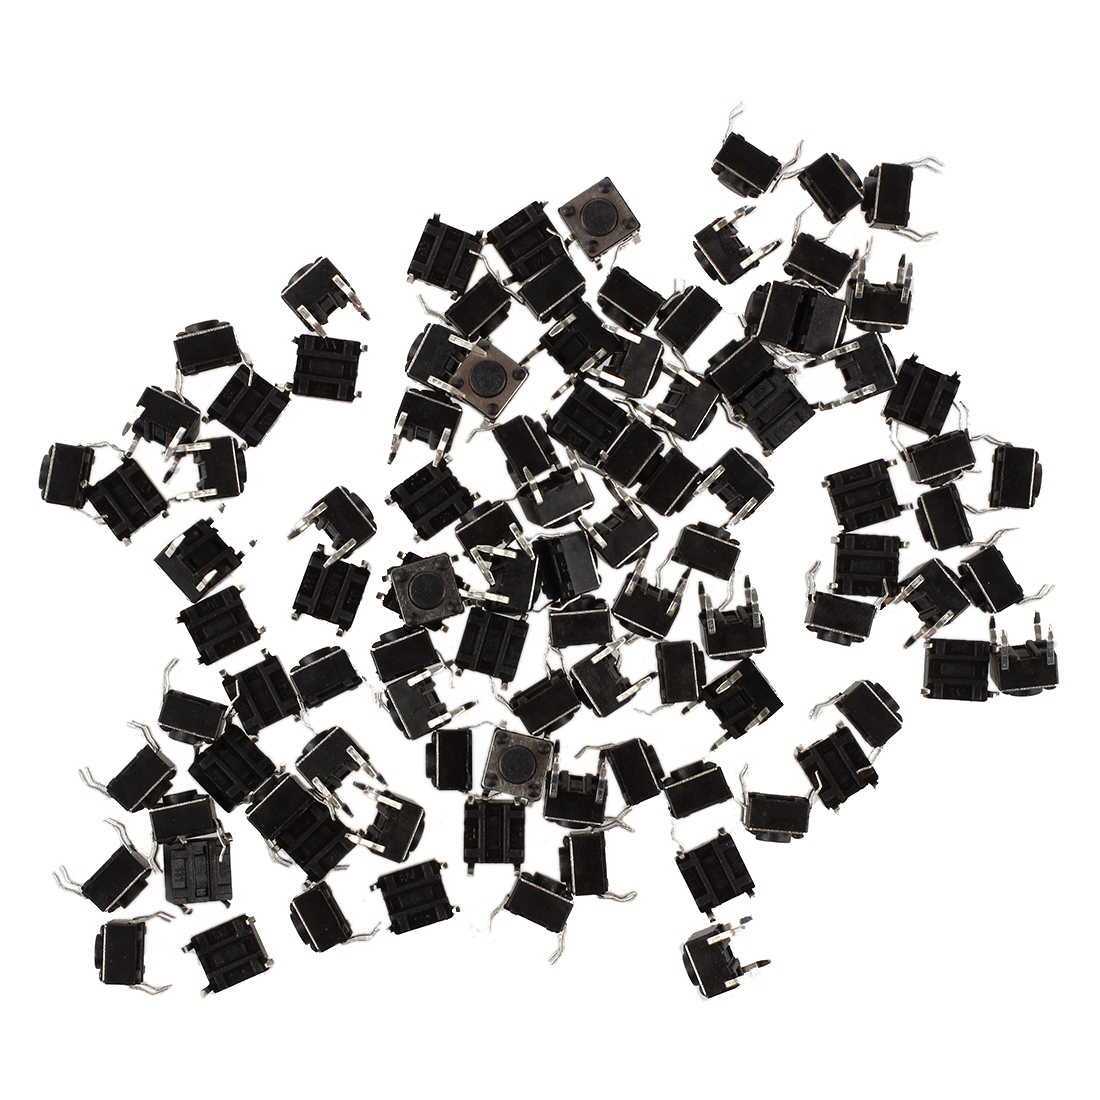 100 Pcs 6x6x4.5mm Panel PCB Momentary Tactile Tact Push Button Switch 4 Pin DIP Drop shipping